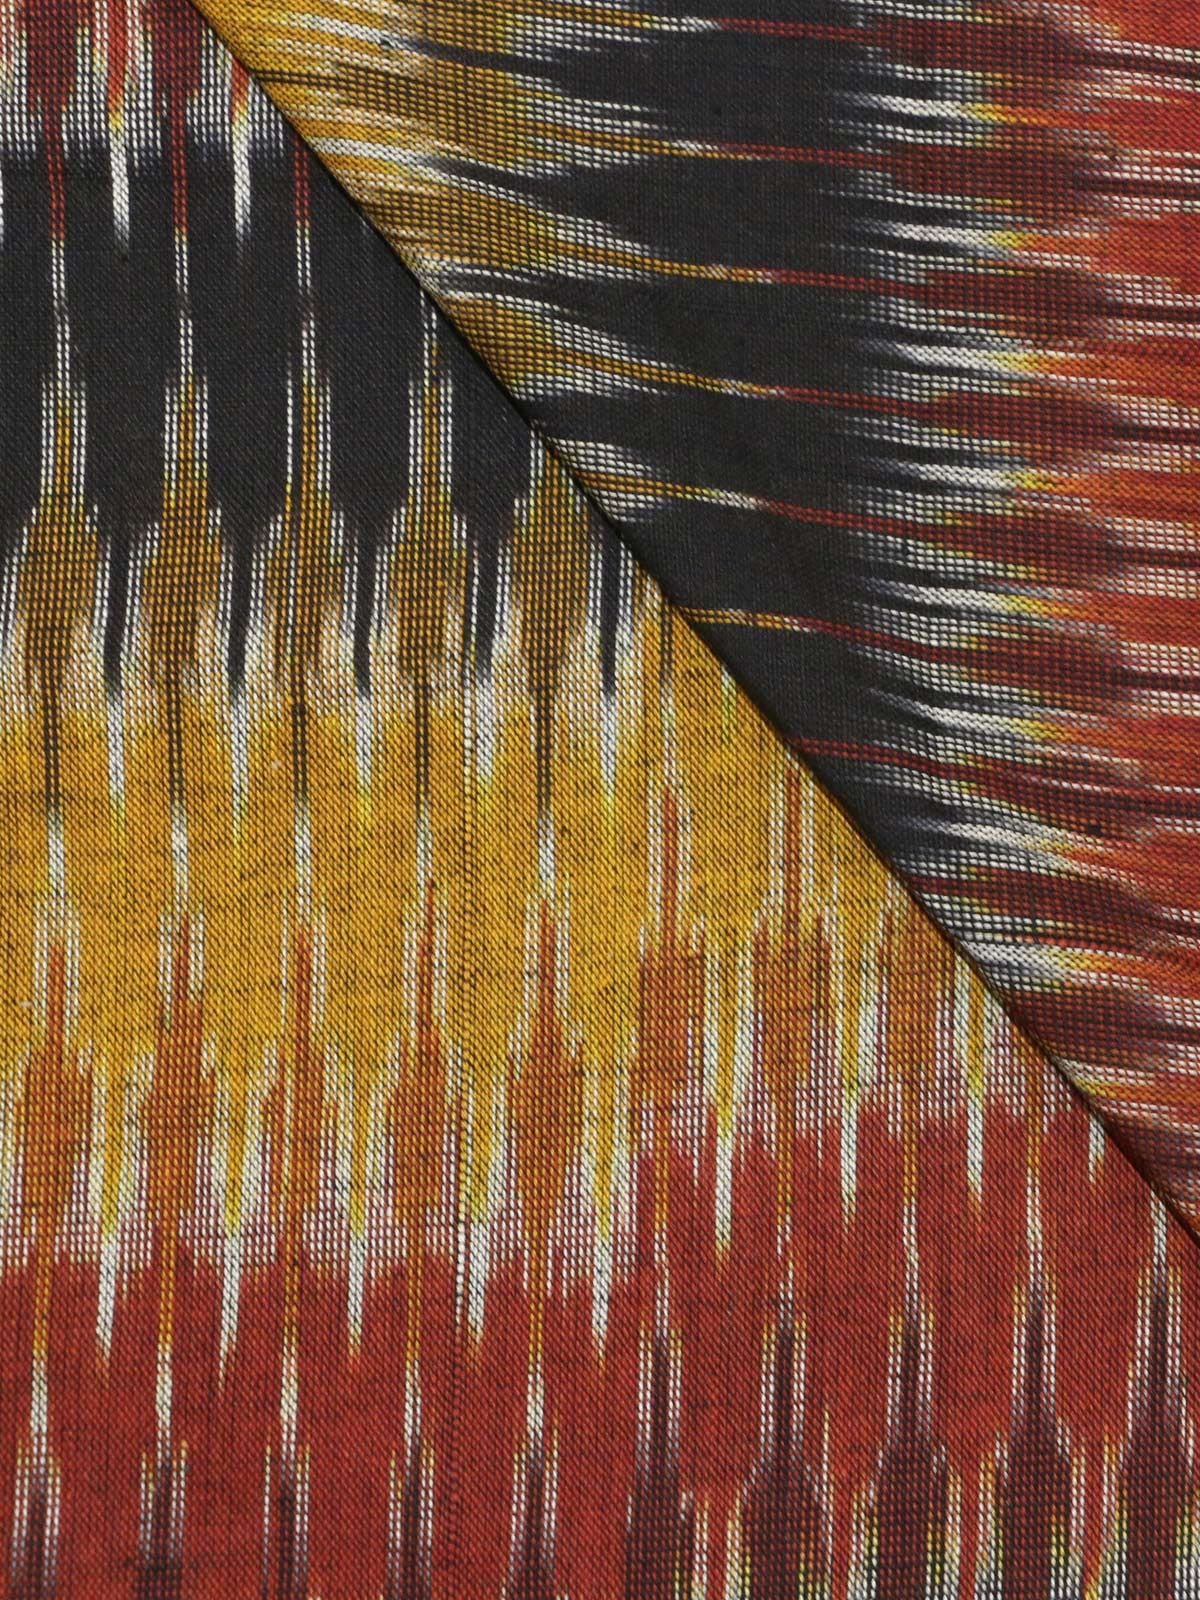 Multicolor ikat handloom cotton fabric